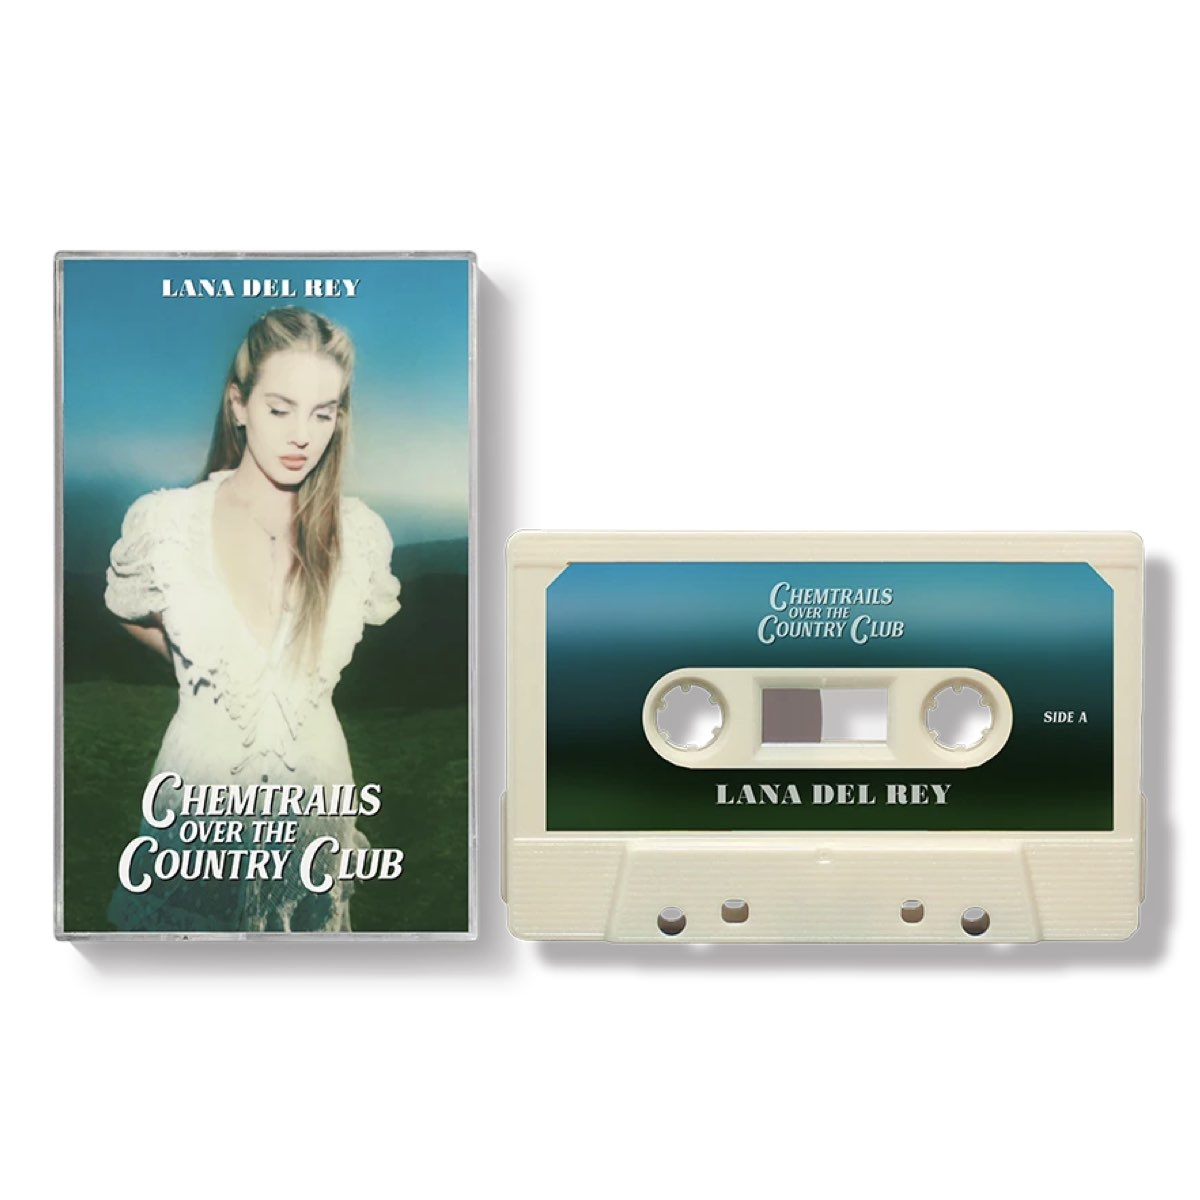 Lana Del Rey - Chemtrails Over The Country Club Cassette #2 [Limited Edition]